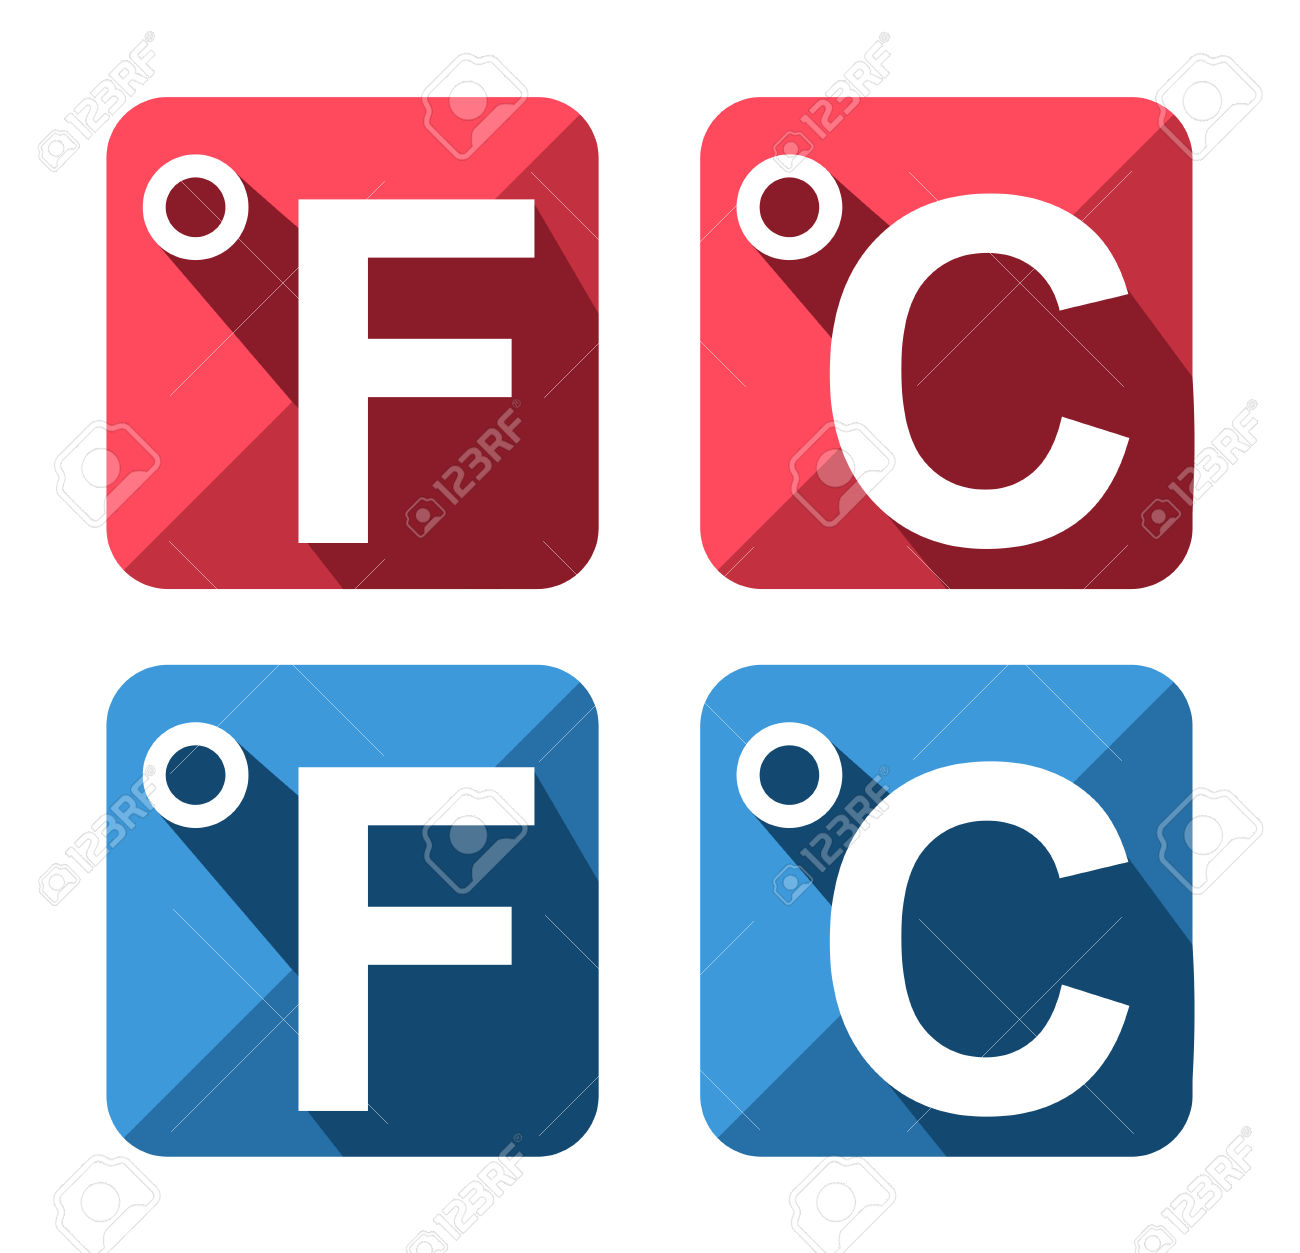 Celsius And Fahrenheit Symbol Icon Set Royalty Free Cliparts.